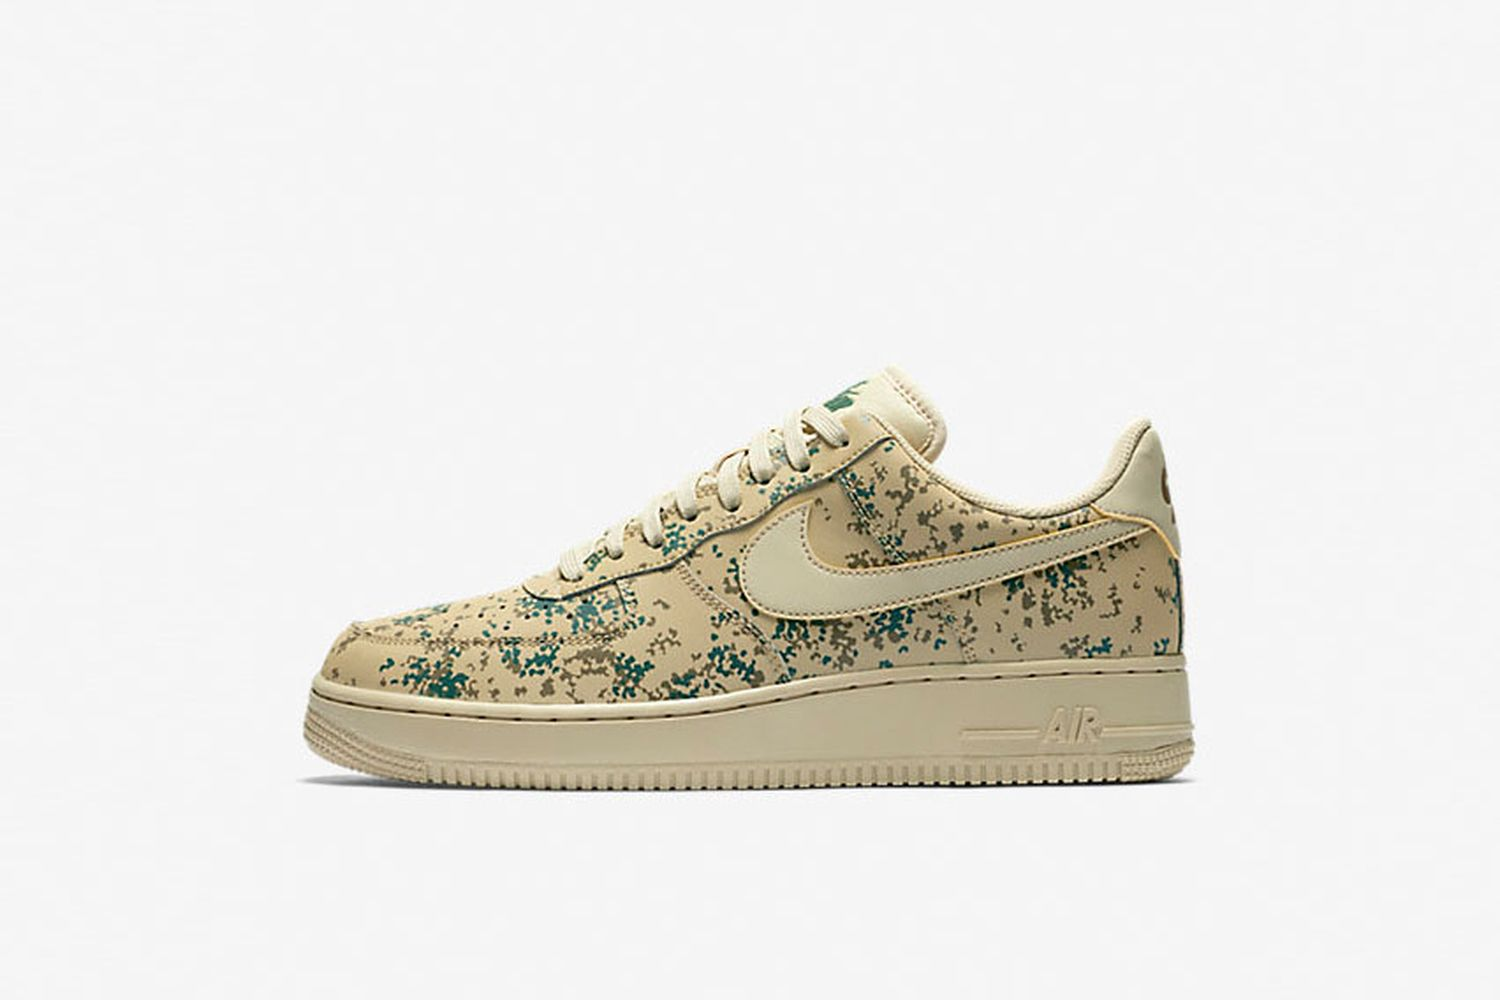 Air Force 1 '07 Low Camo